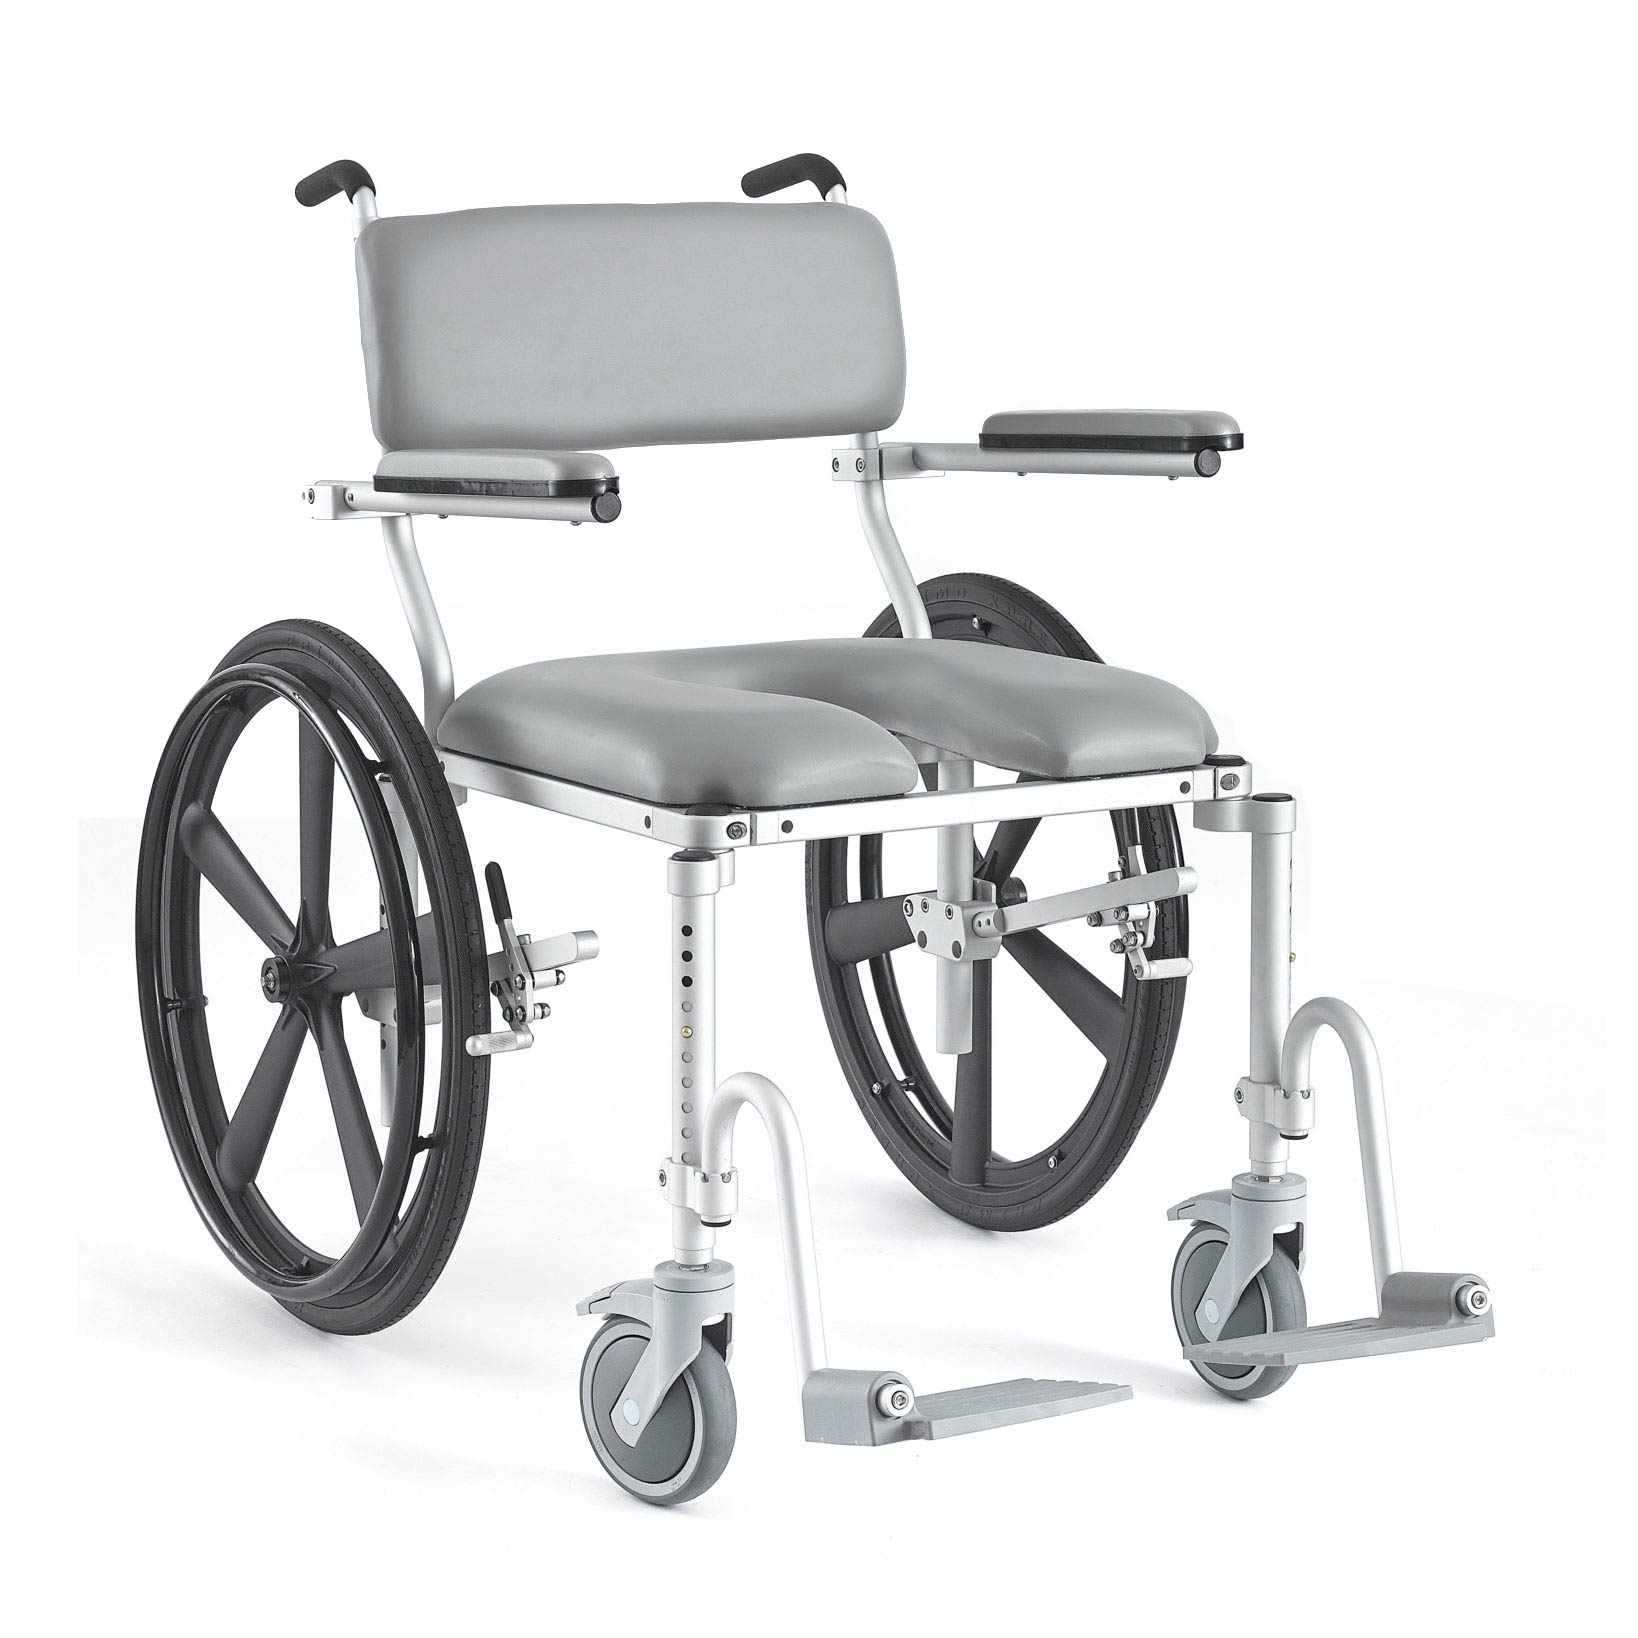 Nuprodx 4224 Roll-In Shower Commode Chair | Medicaleshop